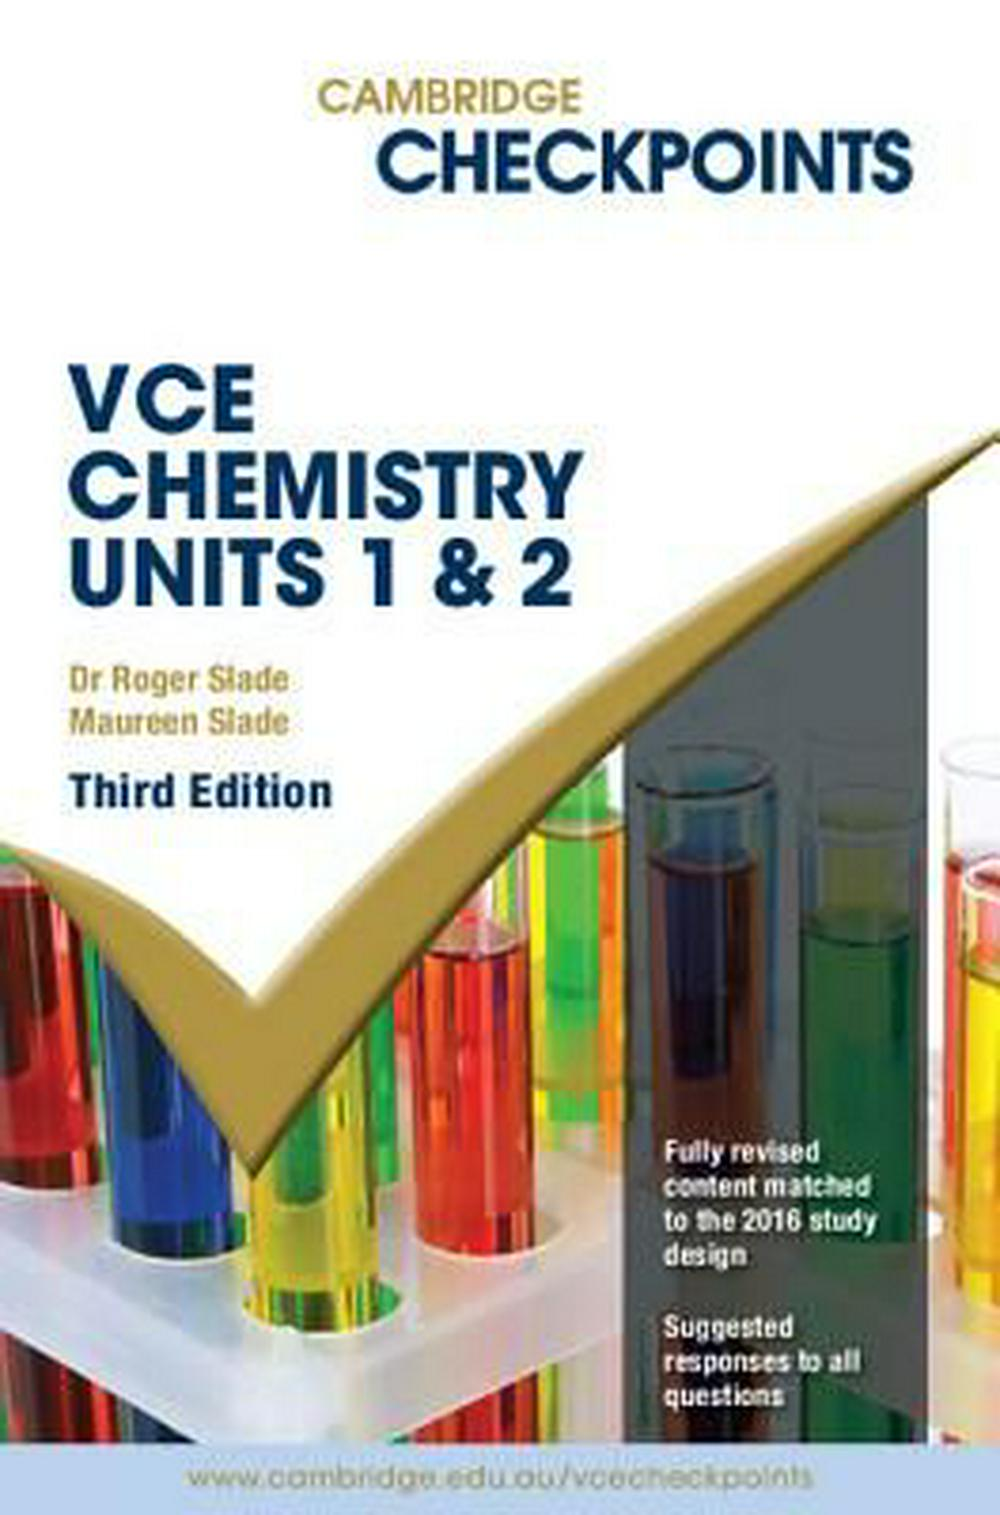 Cambridge Checkpoints VCE Chemistry Units 1 and 2Cambridge Checkpoints